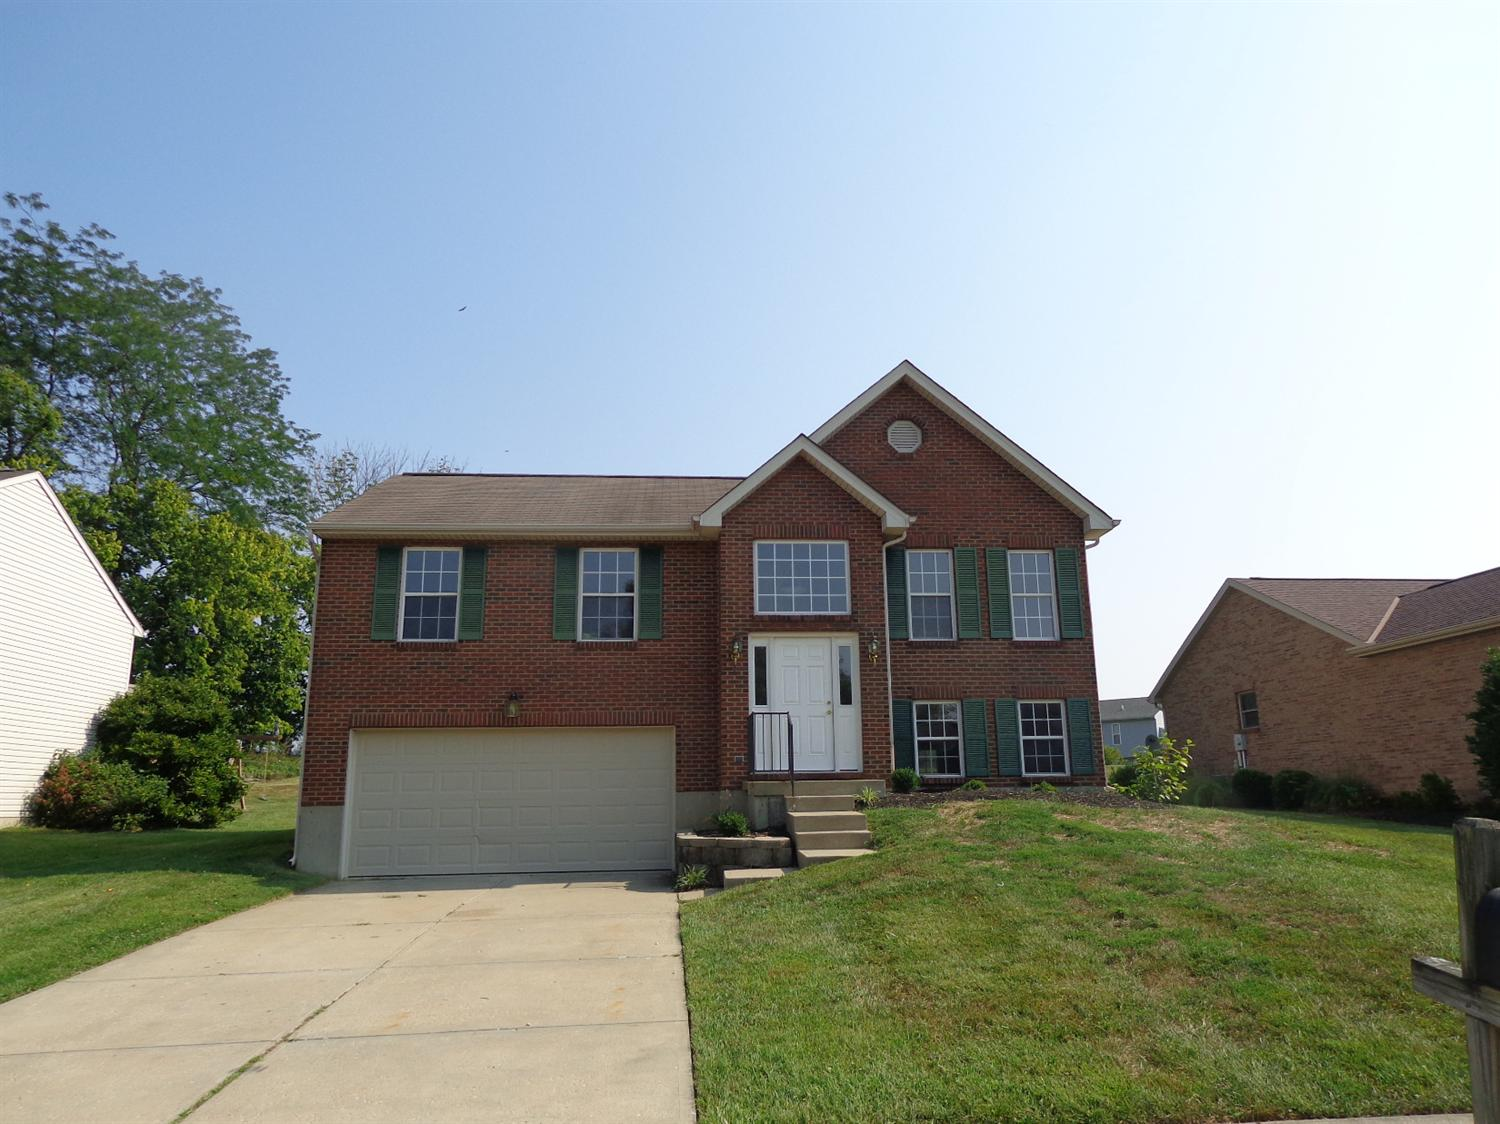 Photo 1 for 10121 Falcon Ridge Dr Independence, KY 41051